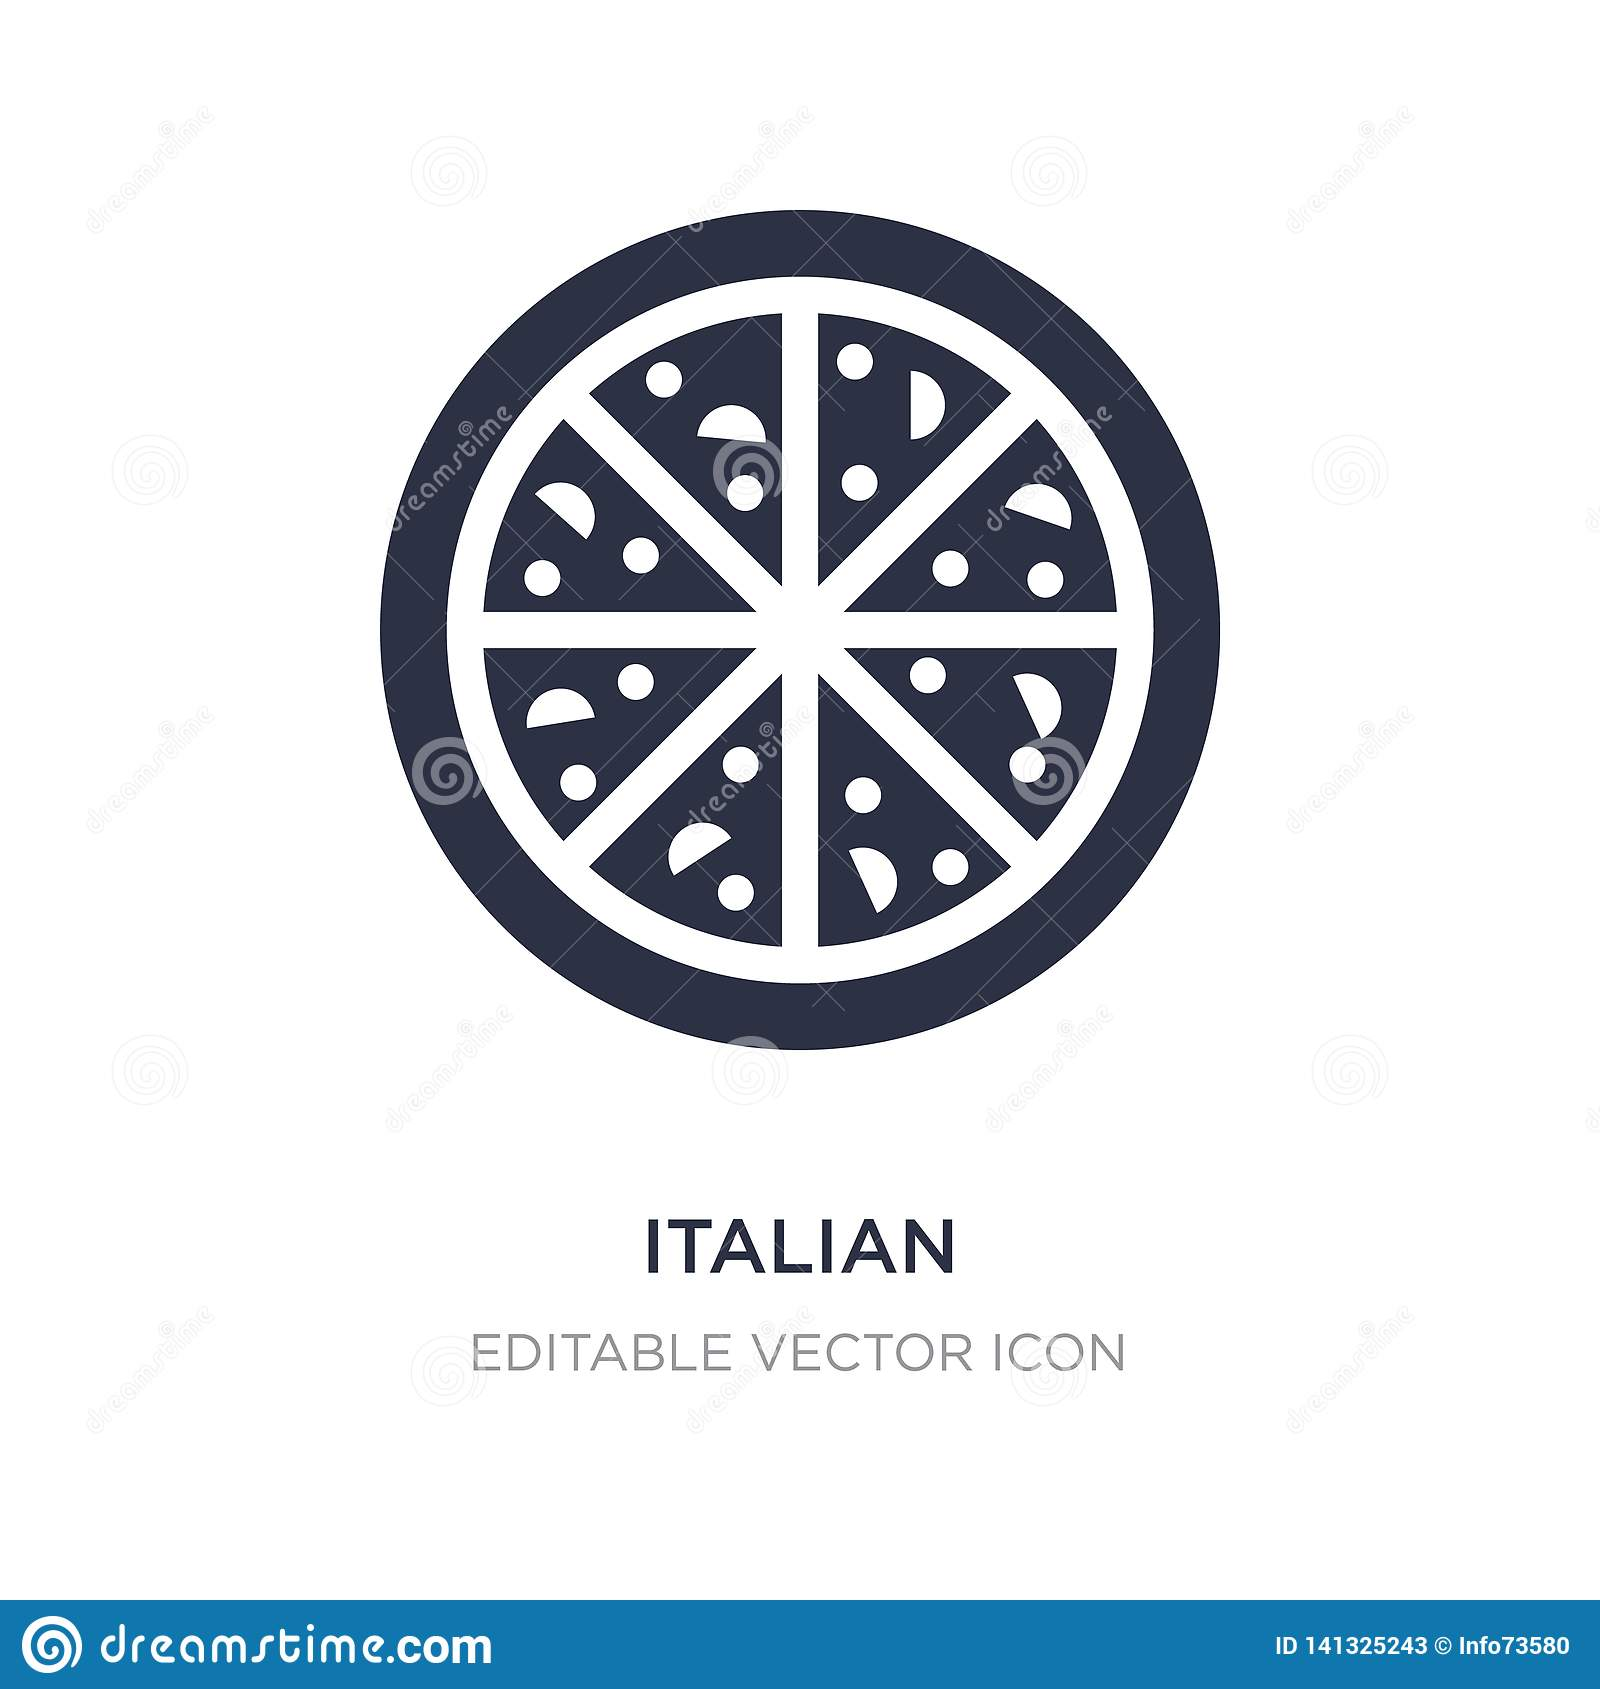 italian icon on white background. Simple element illustration from Food concept